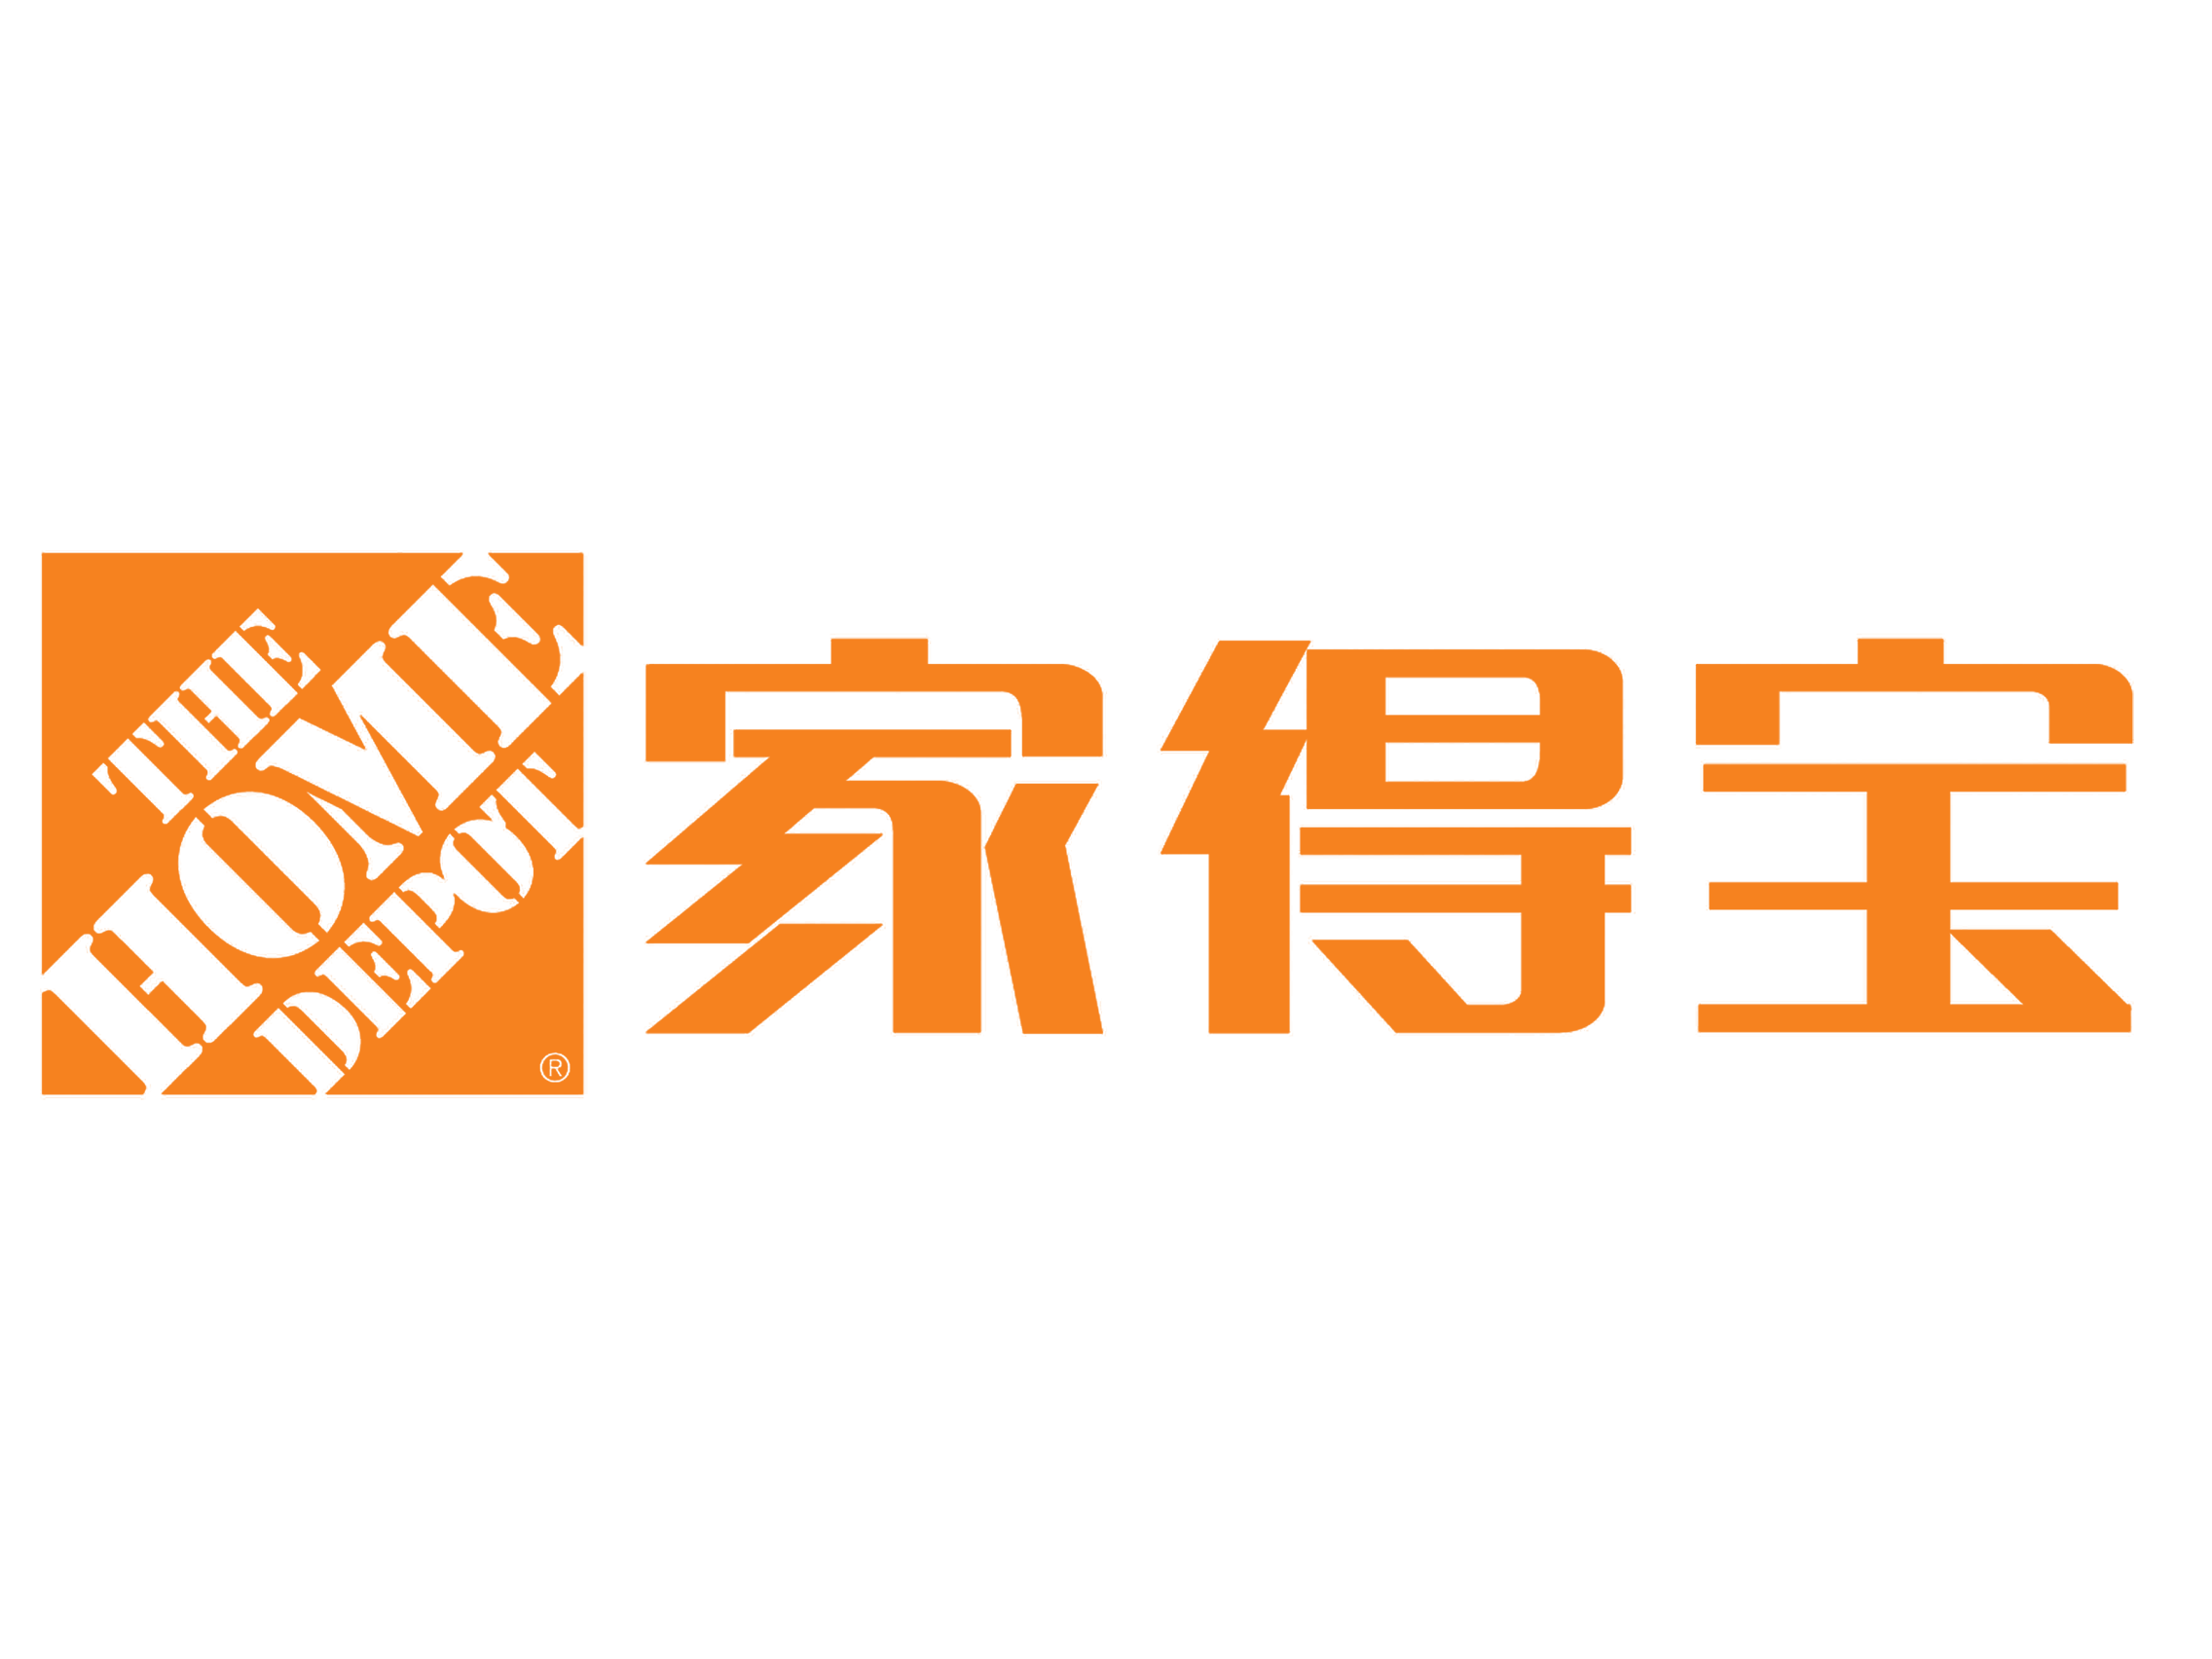 The home depot logo png. Logok thehomedepot chinese